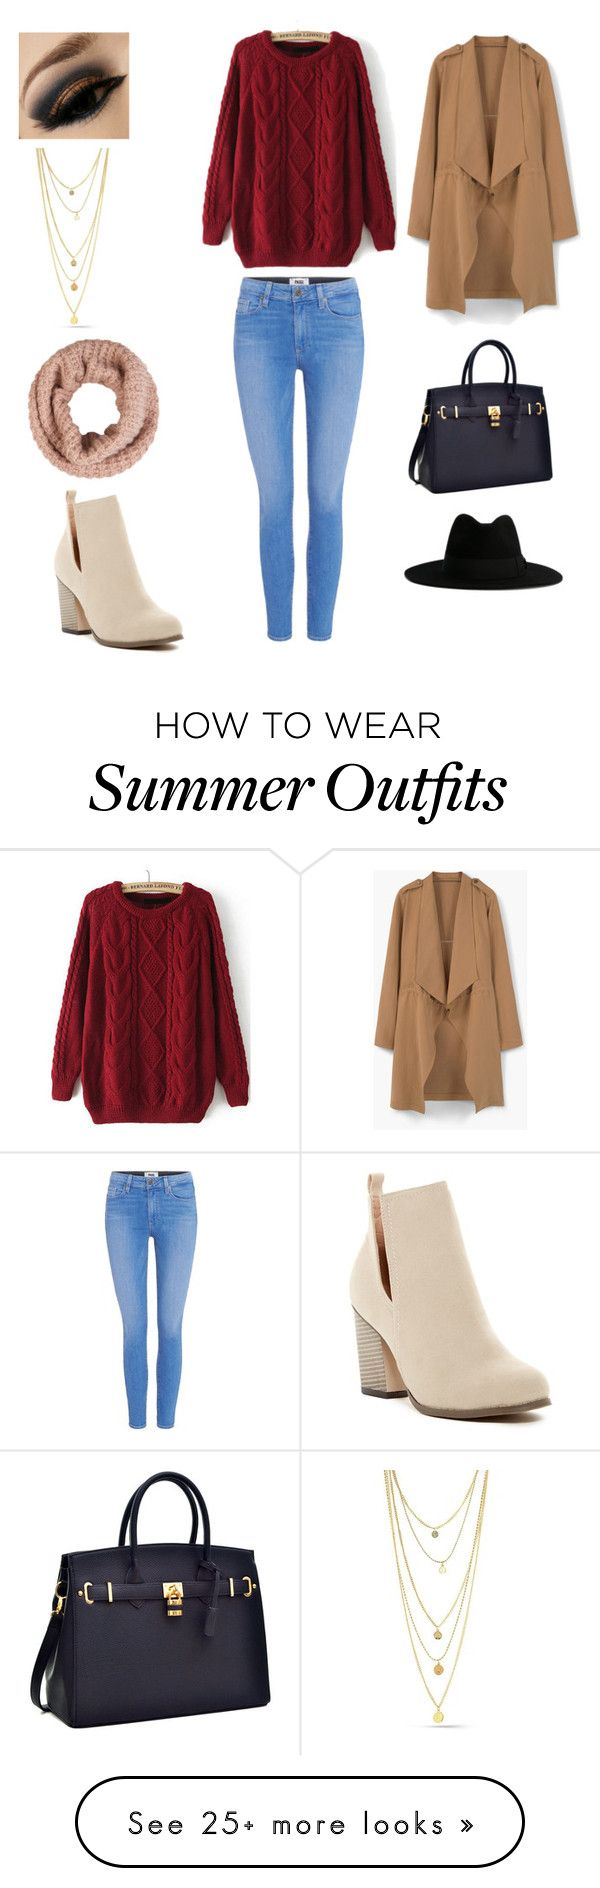 """Fall Outfit"" by musicmagic38 on Polyvore featuring Paige Denim, MANGO, Chase & Chloe, Yves Saint Laurent and Accessorize"